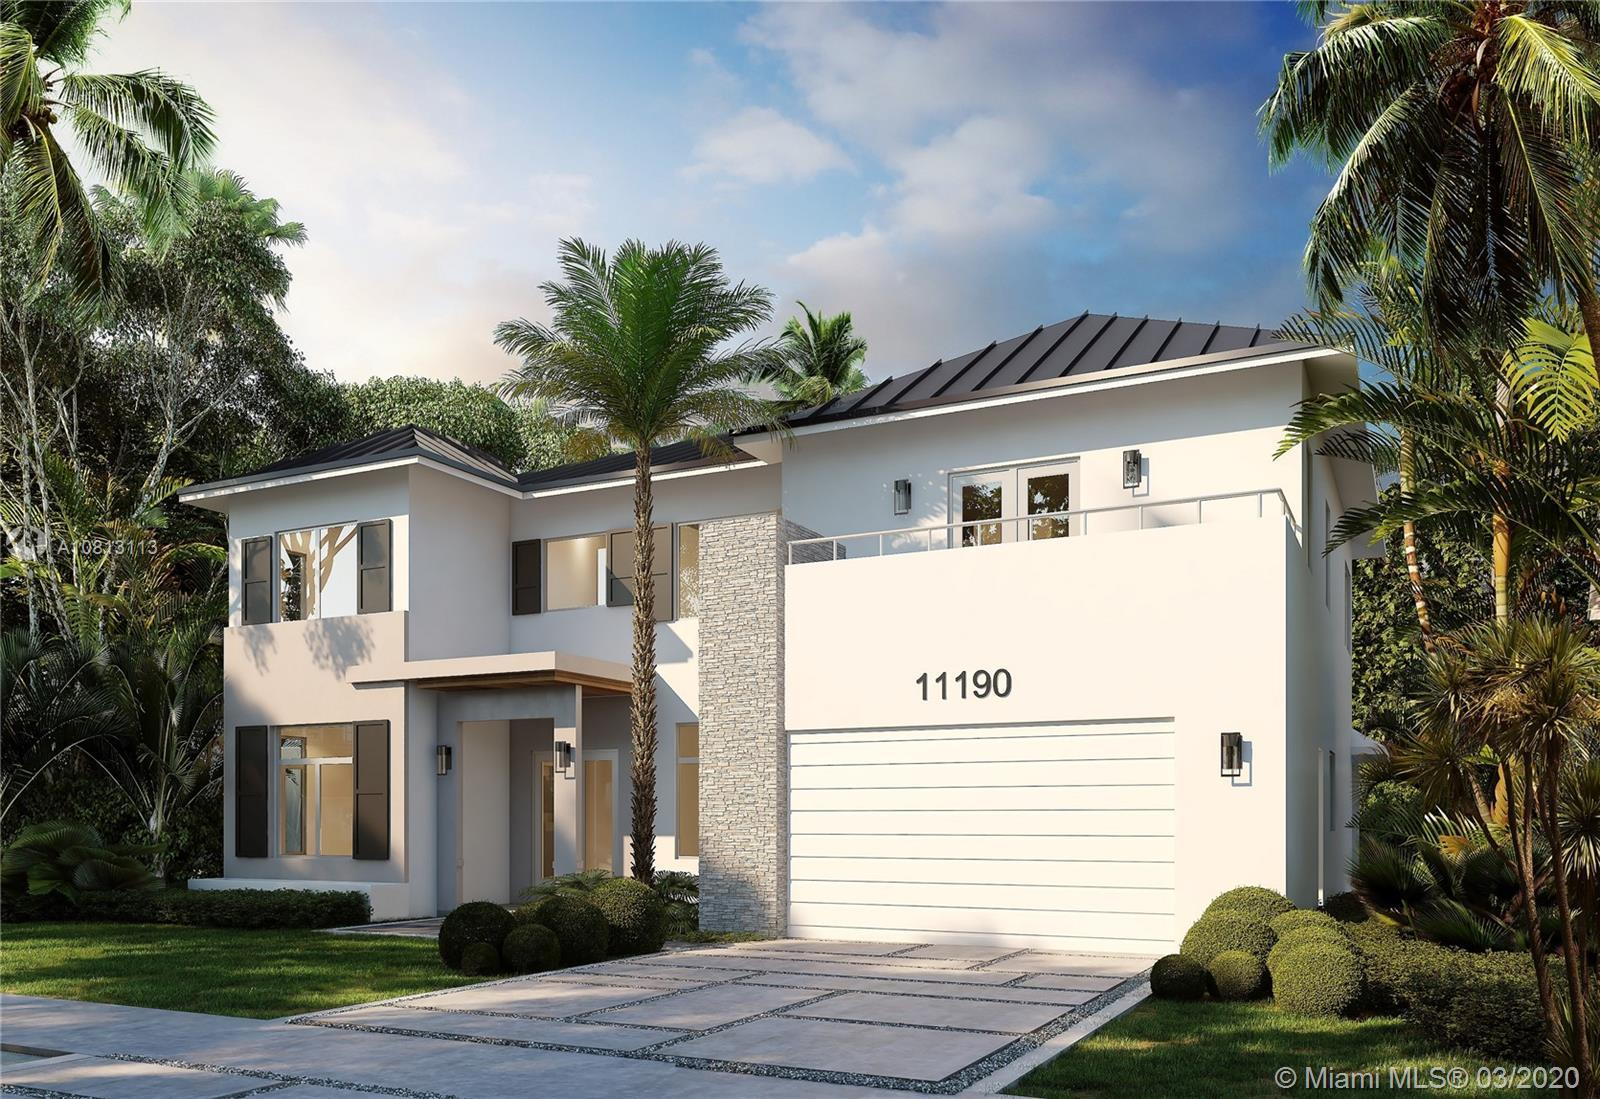 New Construction One of TWO HOMES in Pinecrest. This incredible 2 Story Residence, smart home ready